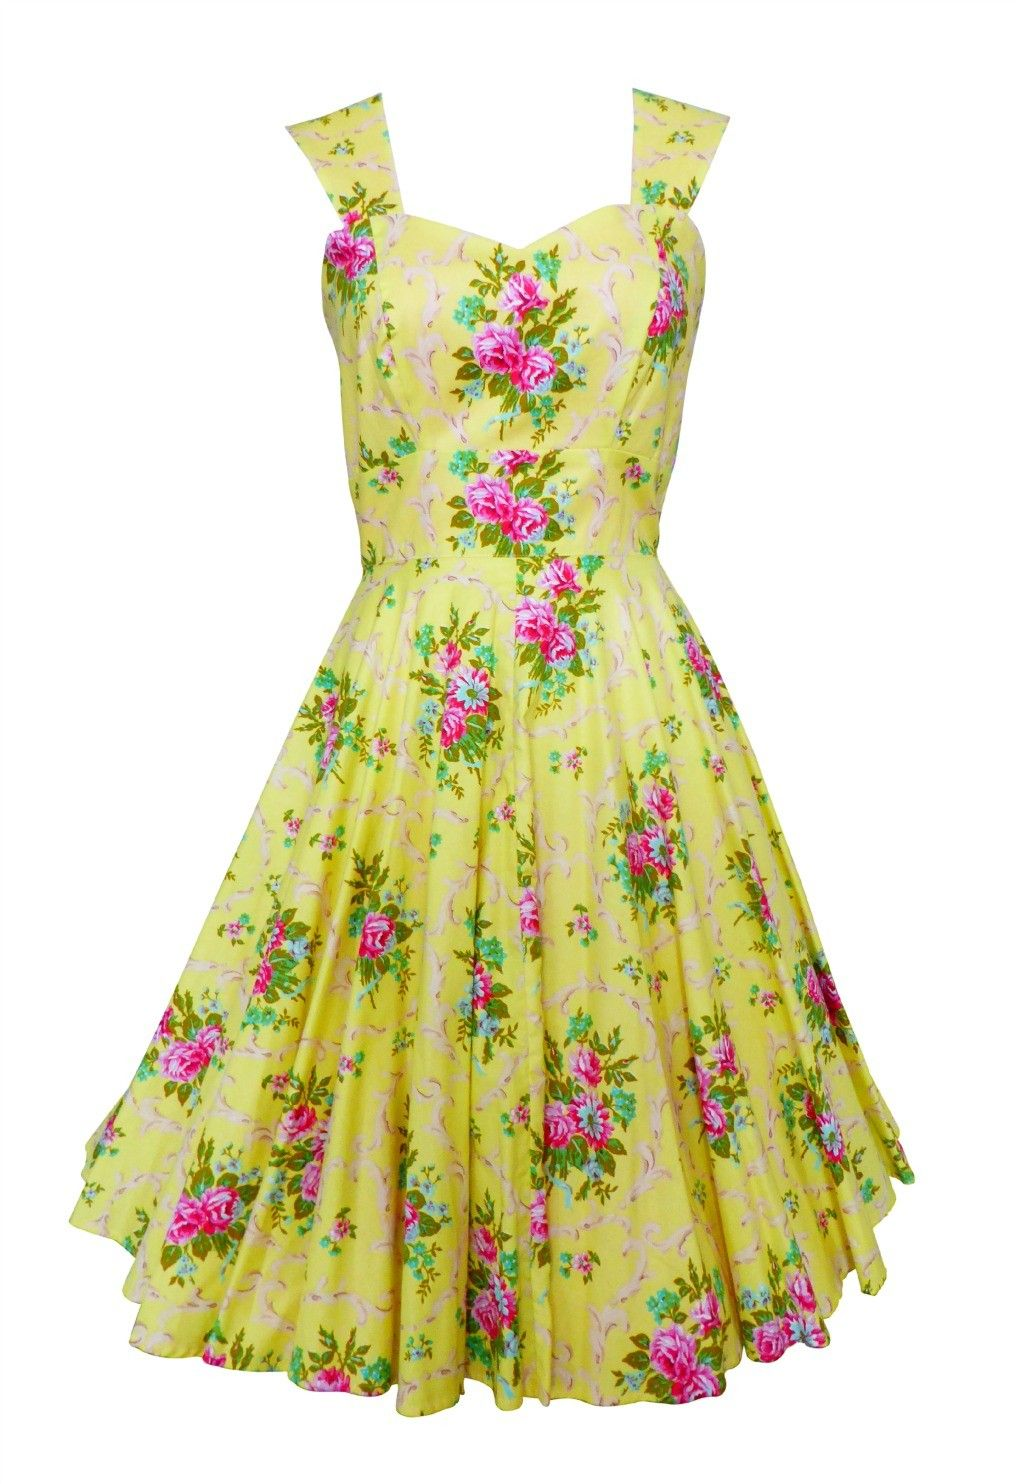 Yellow Floral 50s Dress Vintage Style Pigtails And Pirates Jurk Geel Bloemen Print 1950s Style Sweet Melody Yel Vintage Dresses 50s Dresses 50s Dresses [ 1484 x 1016 Pixel ]